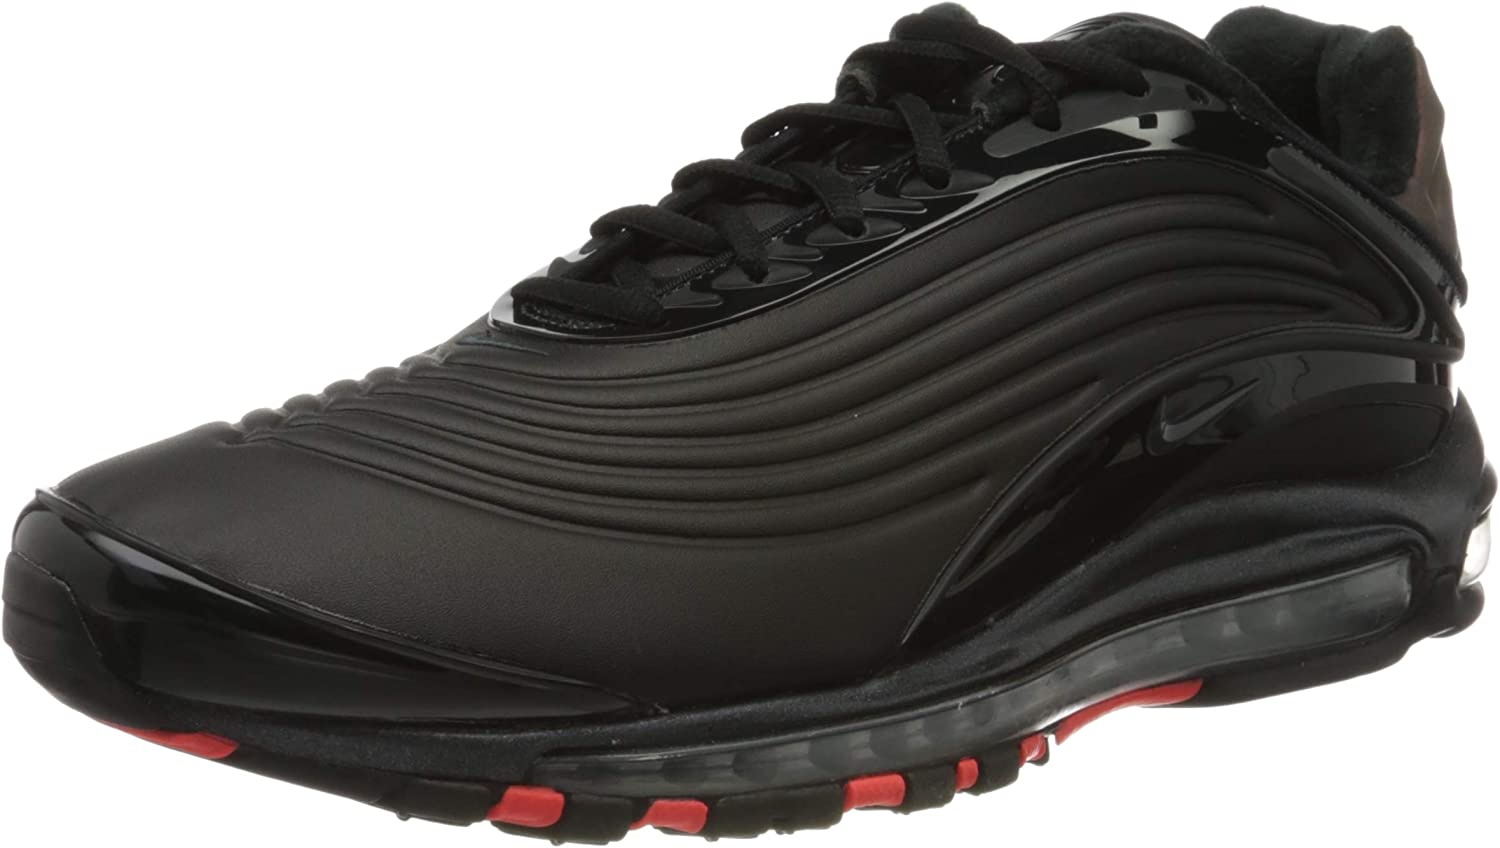 Amazon.com: Nike Air Max Deluxe SE: Shoes